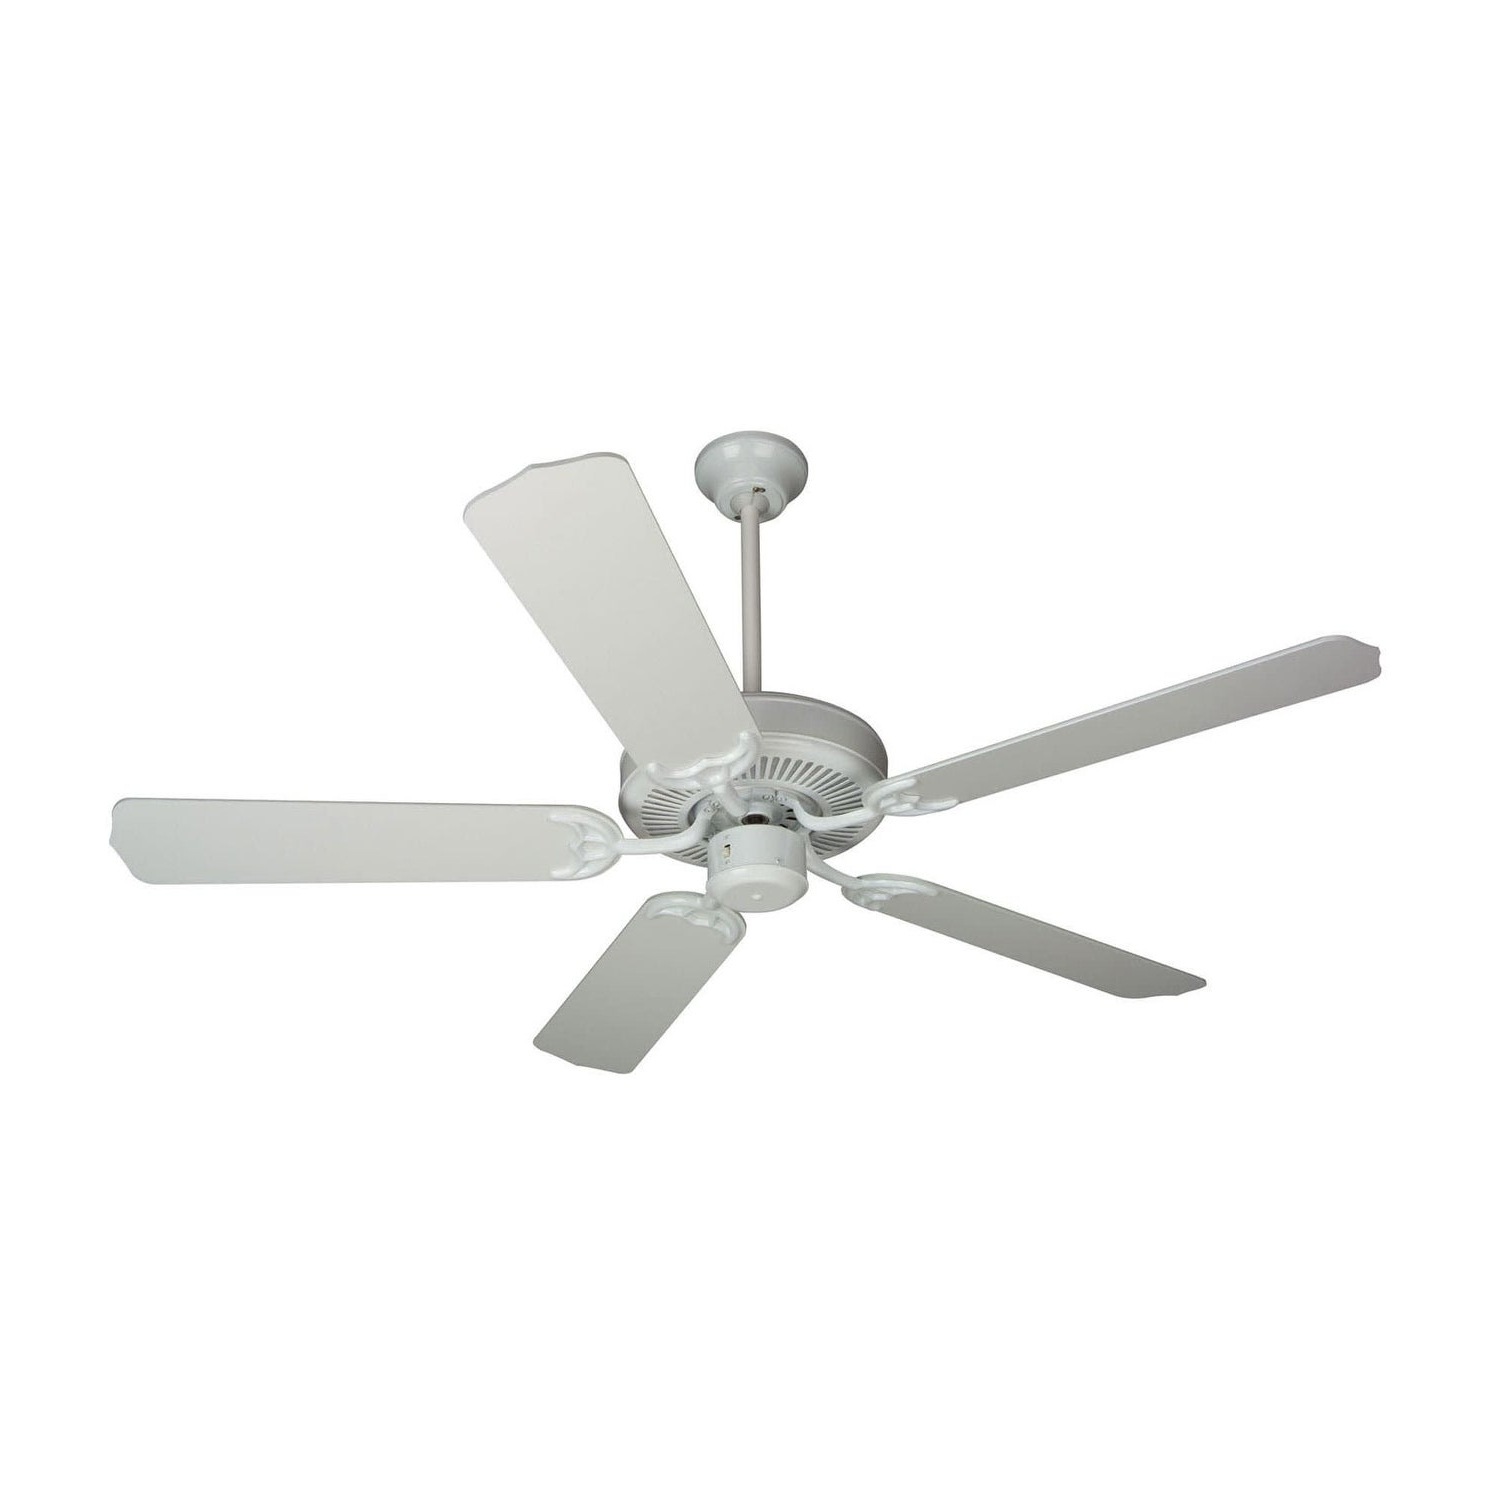 """Craftmade K10621 Contractor's Design 52"""" 5 Blade Energy Star Indoor Ceiling Fan – Blades Included With Recent Contractor 5 Blade Ceiling Fans (View 13 of 20)"""